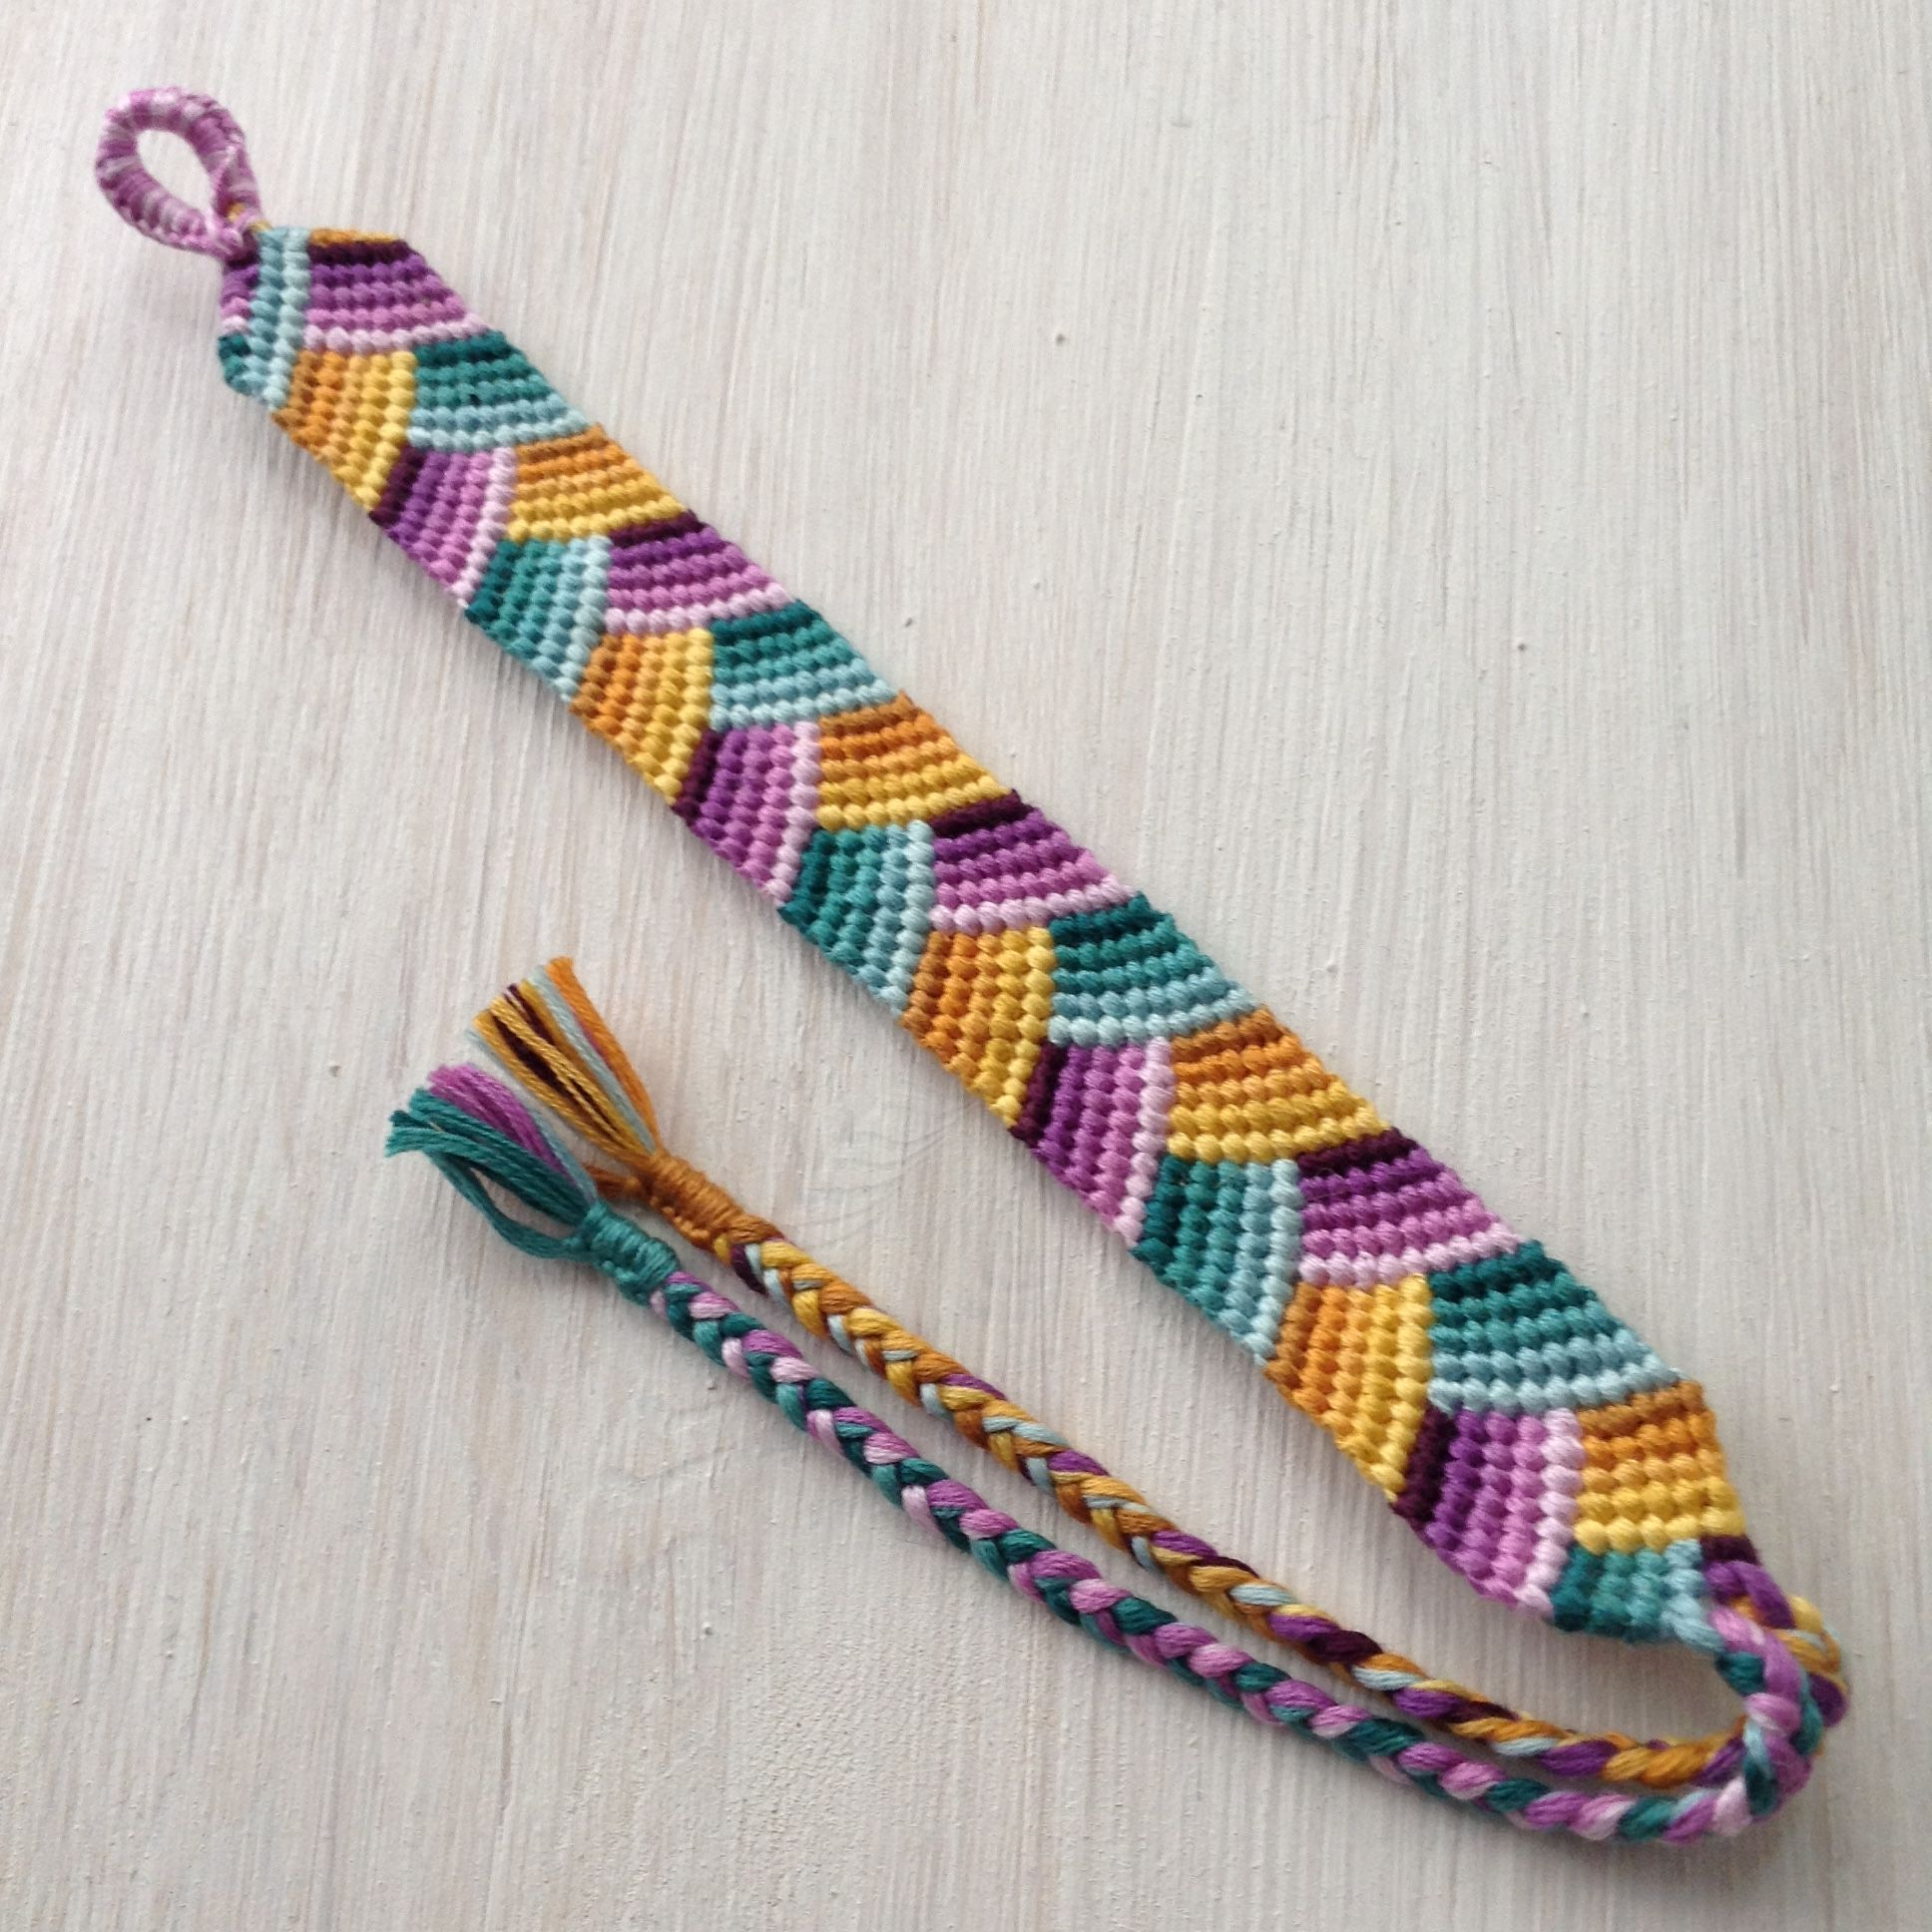 Friendship Embroidery Bracelets Embroidery Floss Bracelets Floss Bracelets Yarn Bracelets